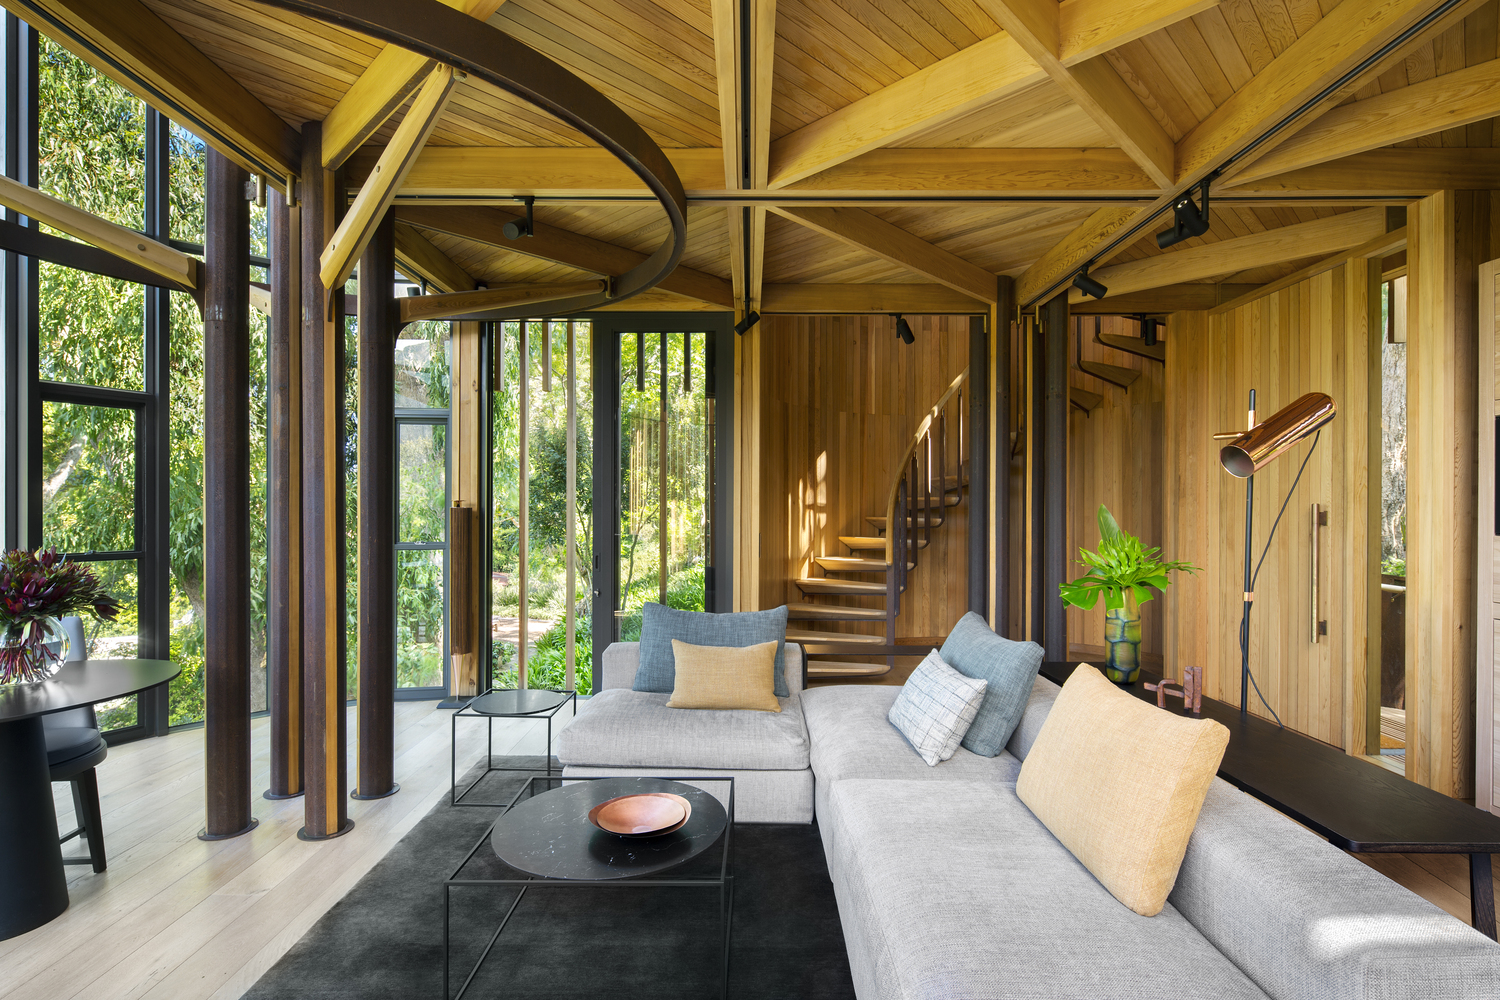 Contemporary Hide-Away Tree House on a Forested Estate | iDesignArch on south be, south sa, south tv,